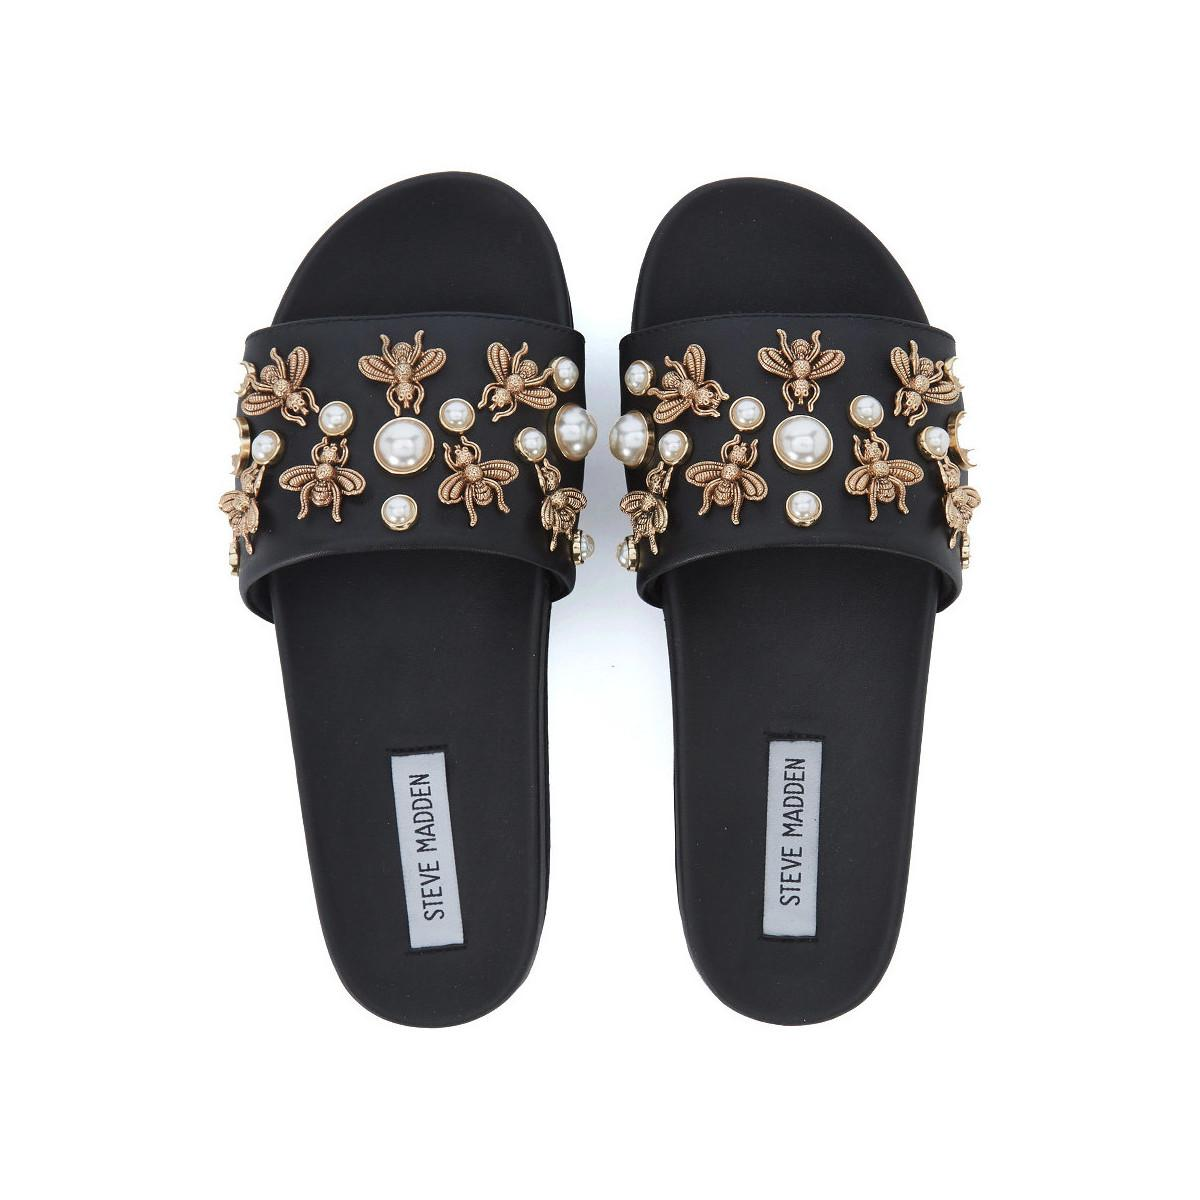 be60875fdda Steve Madden - Adorn Black Eco Leather Slipper With Pearls And Insects Women s  Sandals In Black. View fullscreen